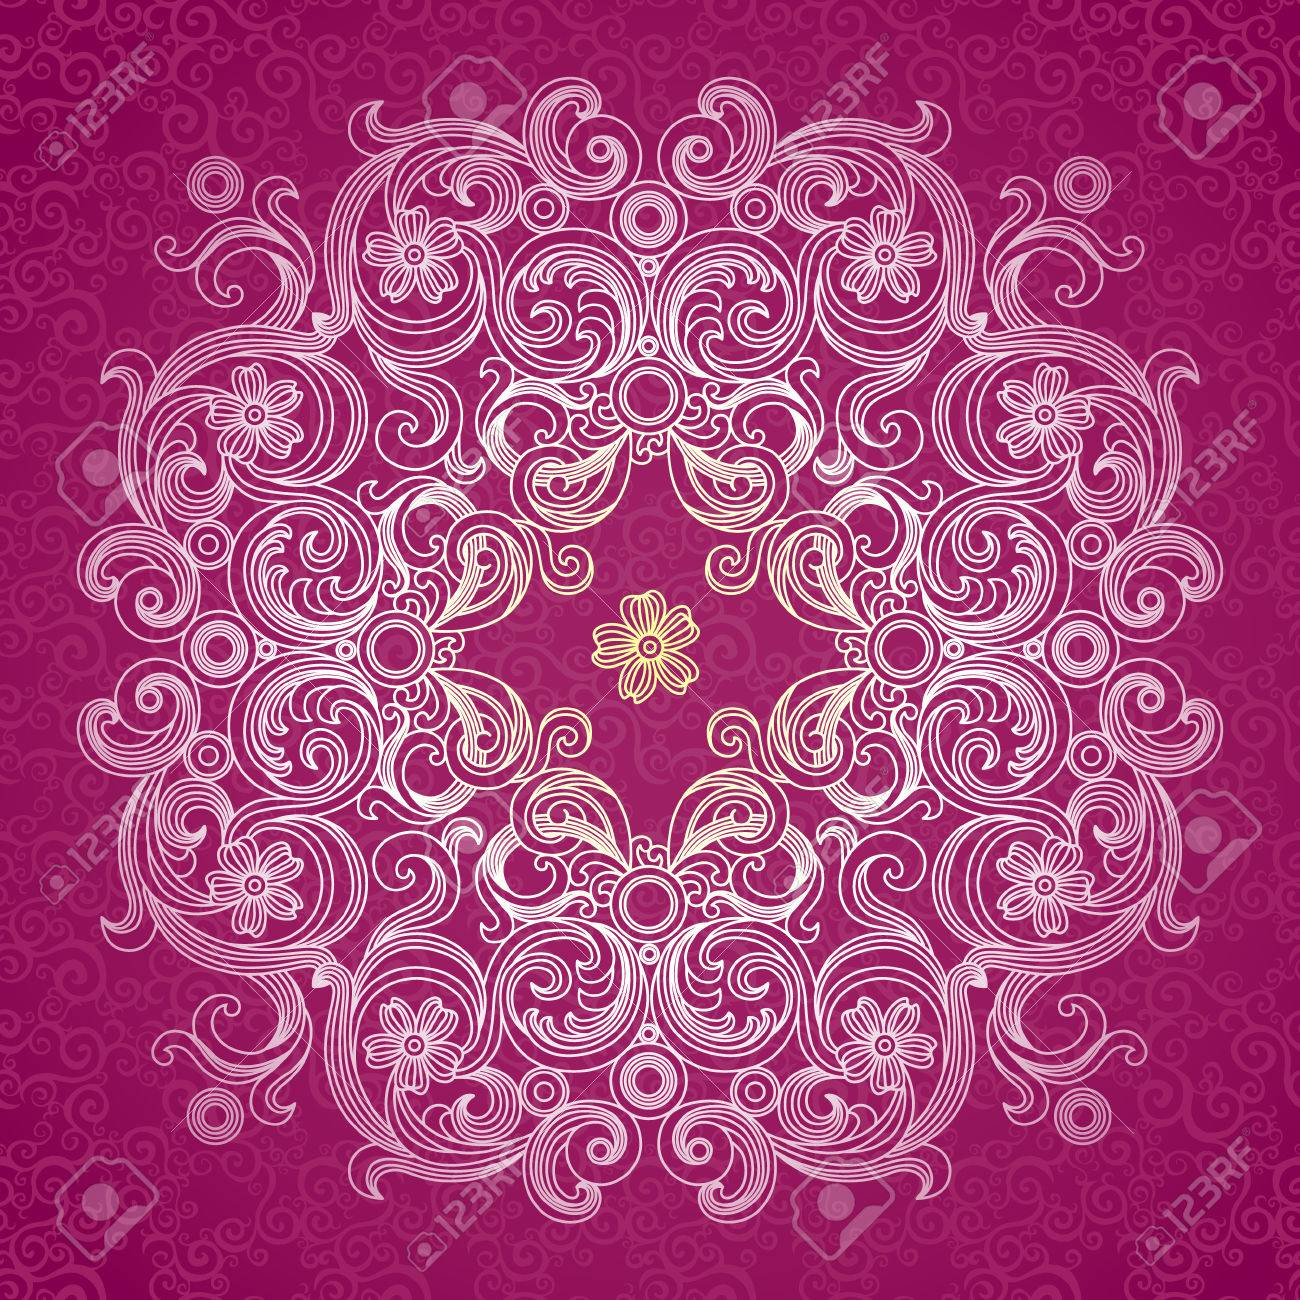 Abstract vector circle background lace pattern design white abstract vector circle background lace pattern design white ornament on purple scroll background junglespirit Gallery